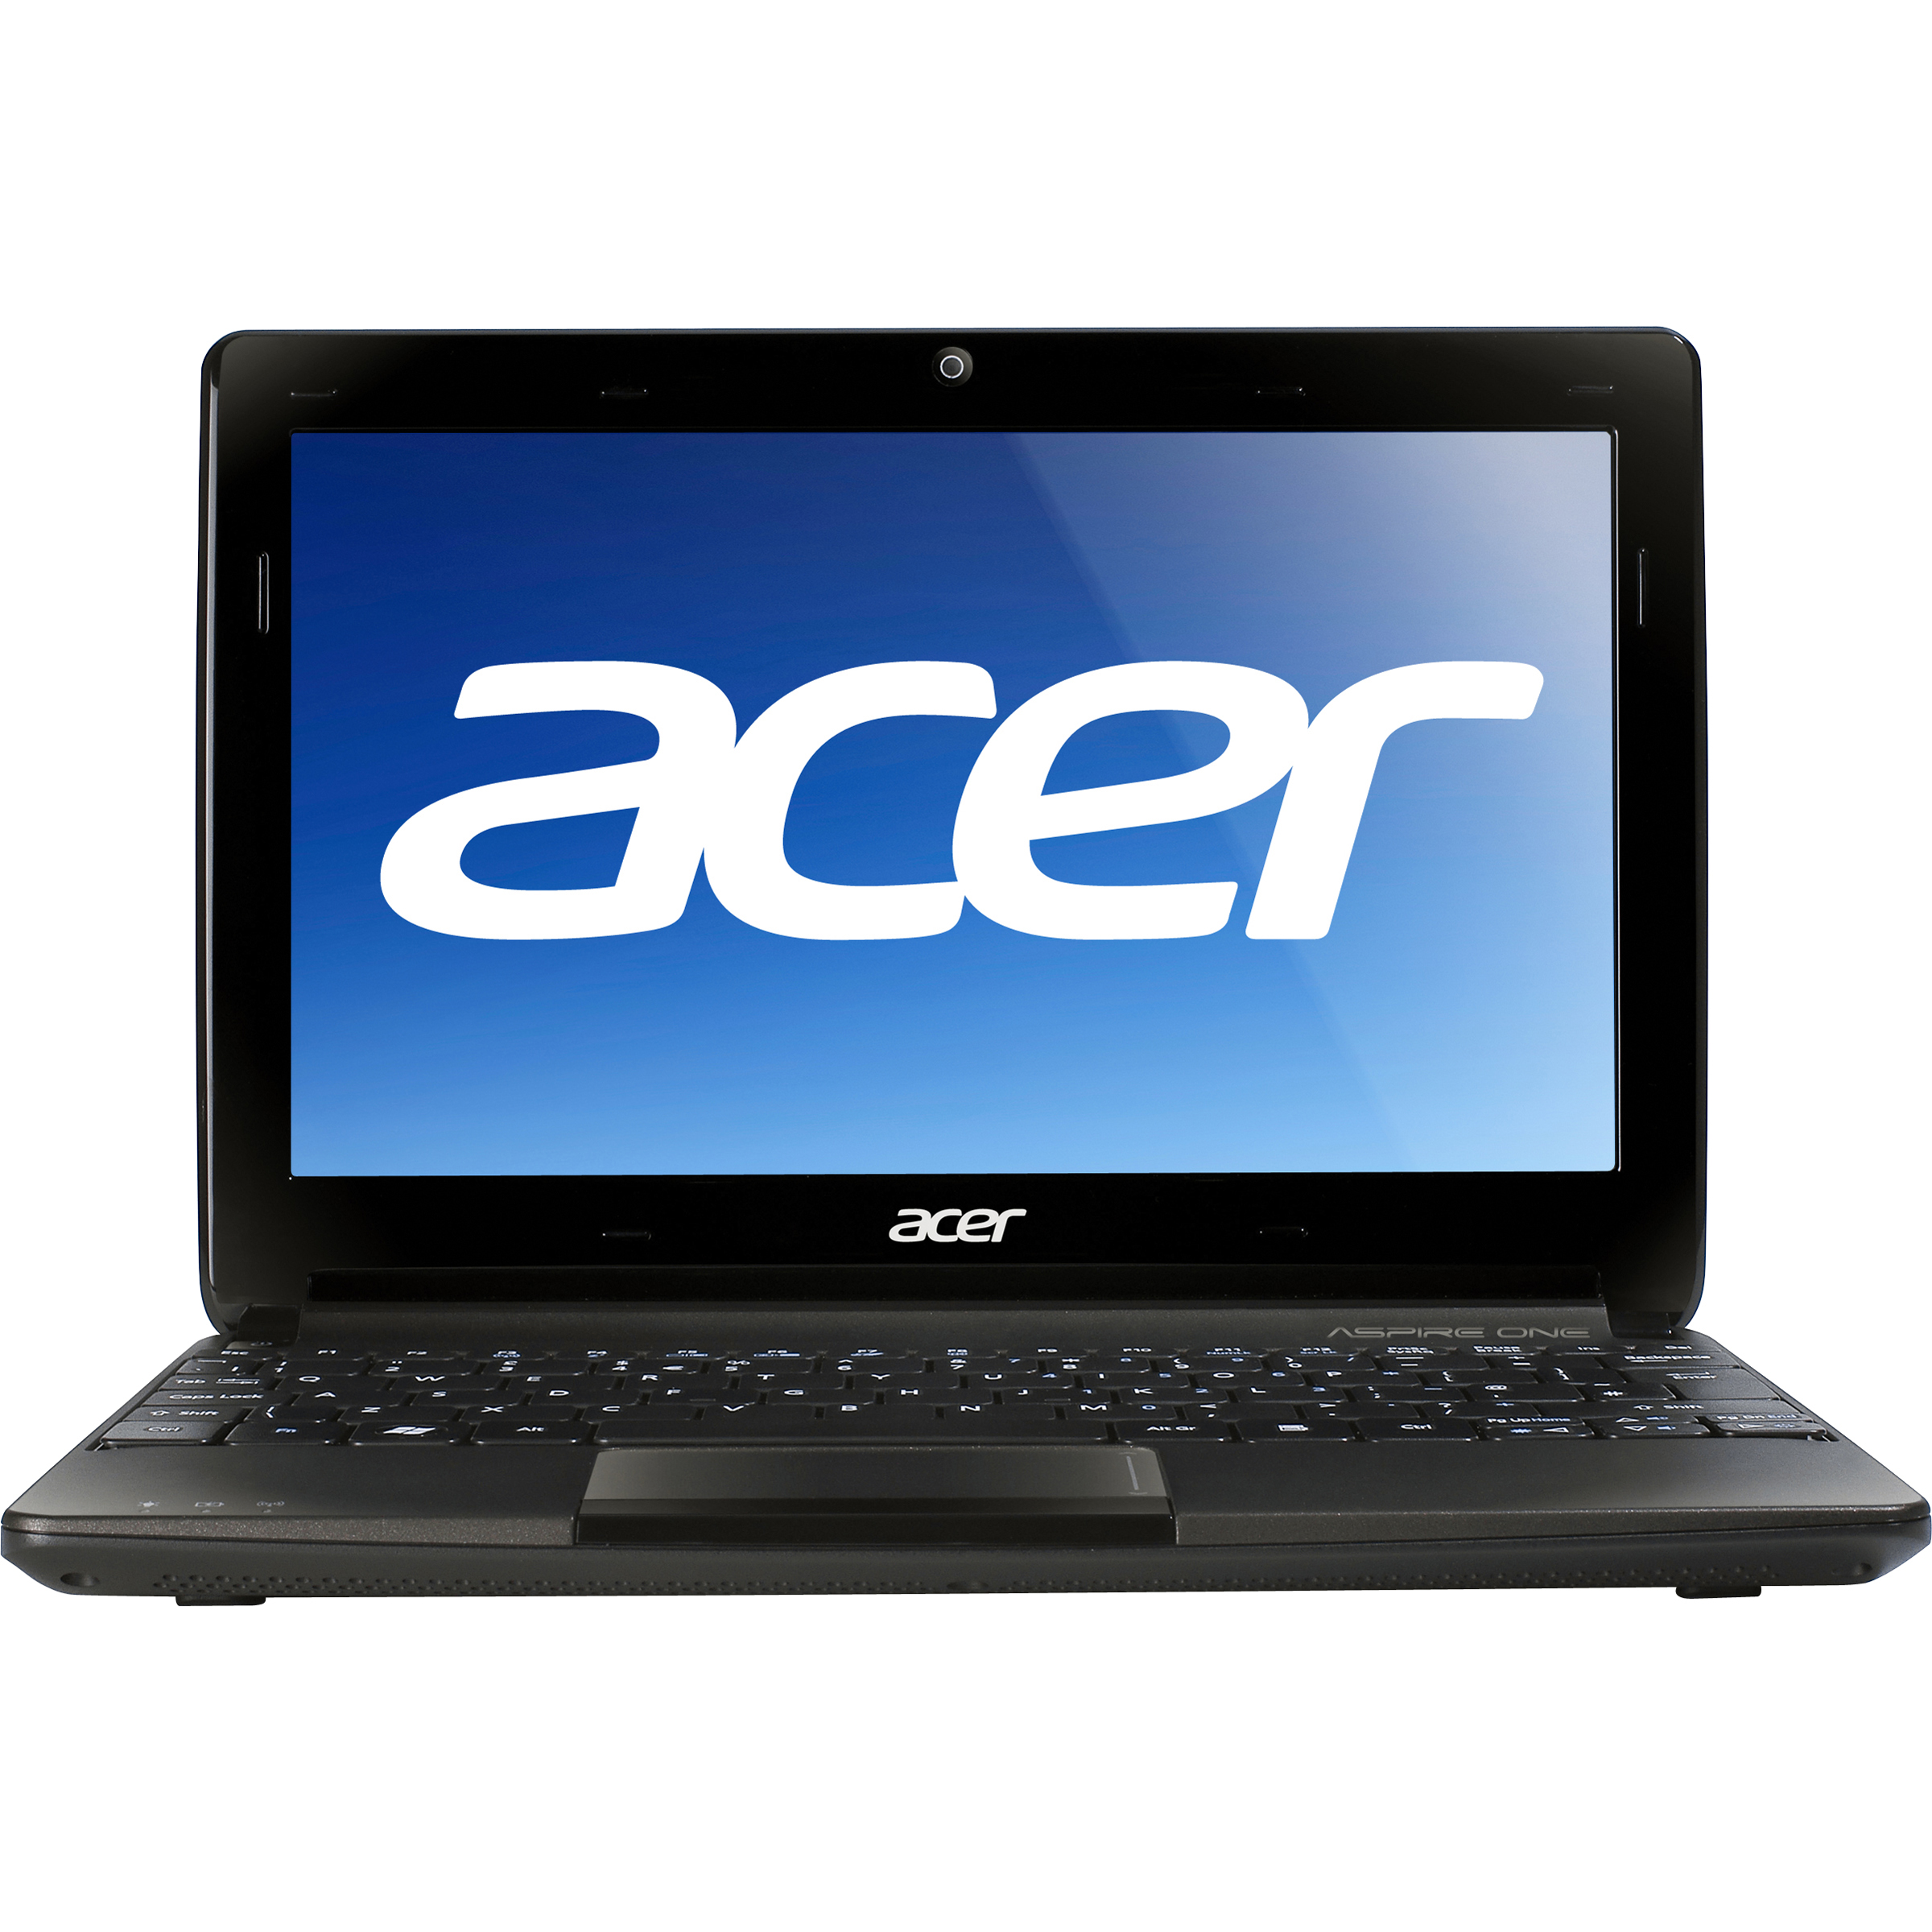 "Acer Espresso Black 10.1"" Aspire One AOD270-1410 Netbook PC with Intel Atom Dual-Core N2600 Processor with 6-cell battery and Windows 7 Starter"